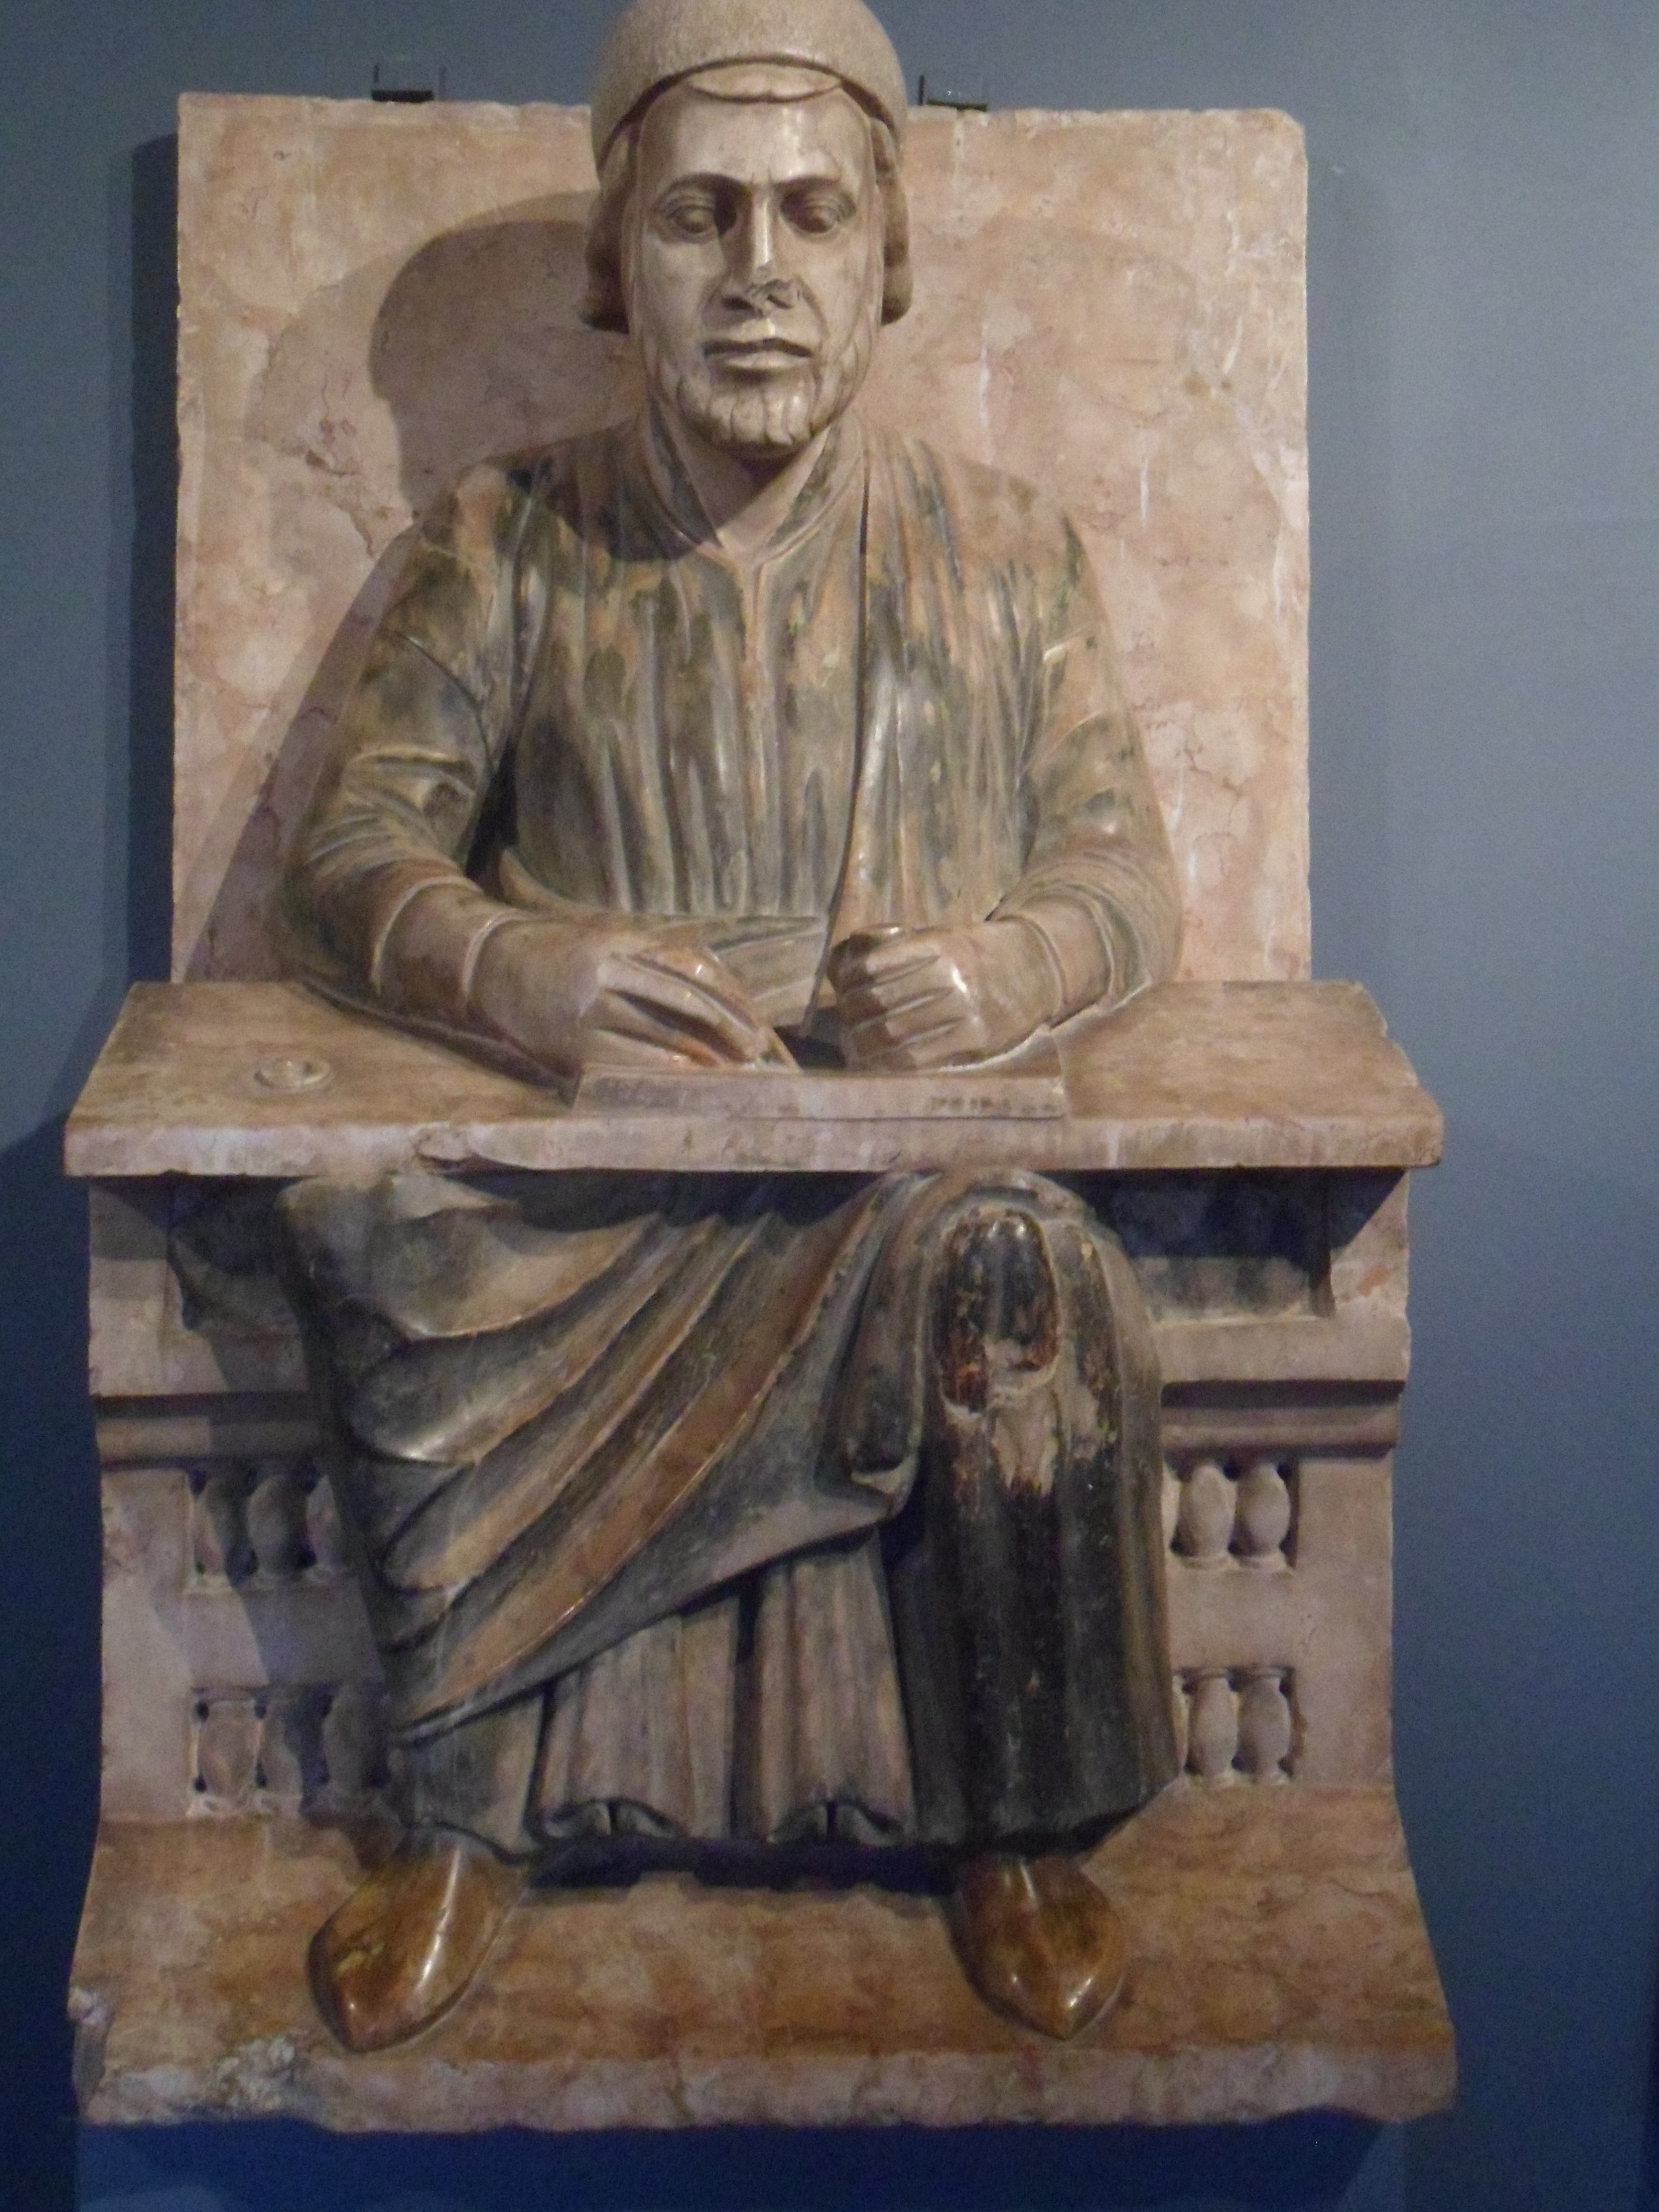 A pale red marbe statue of a man in robes and cap seated at a weighty desk